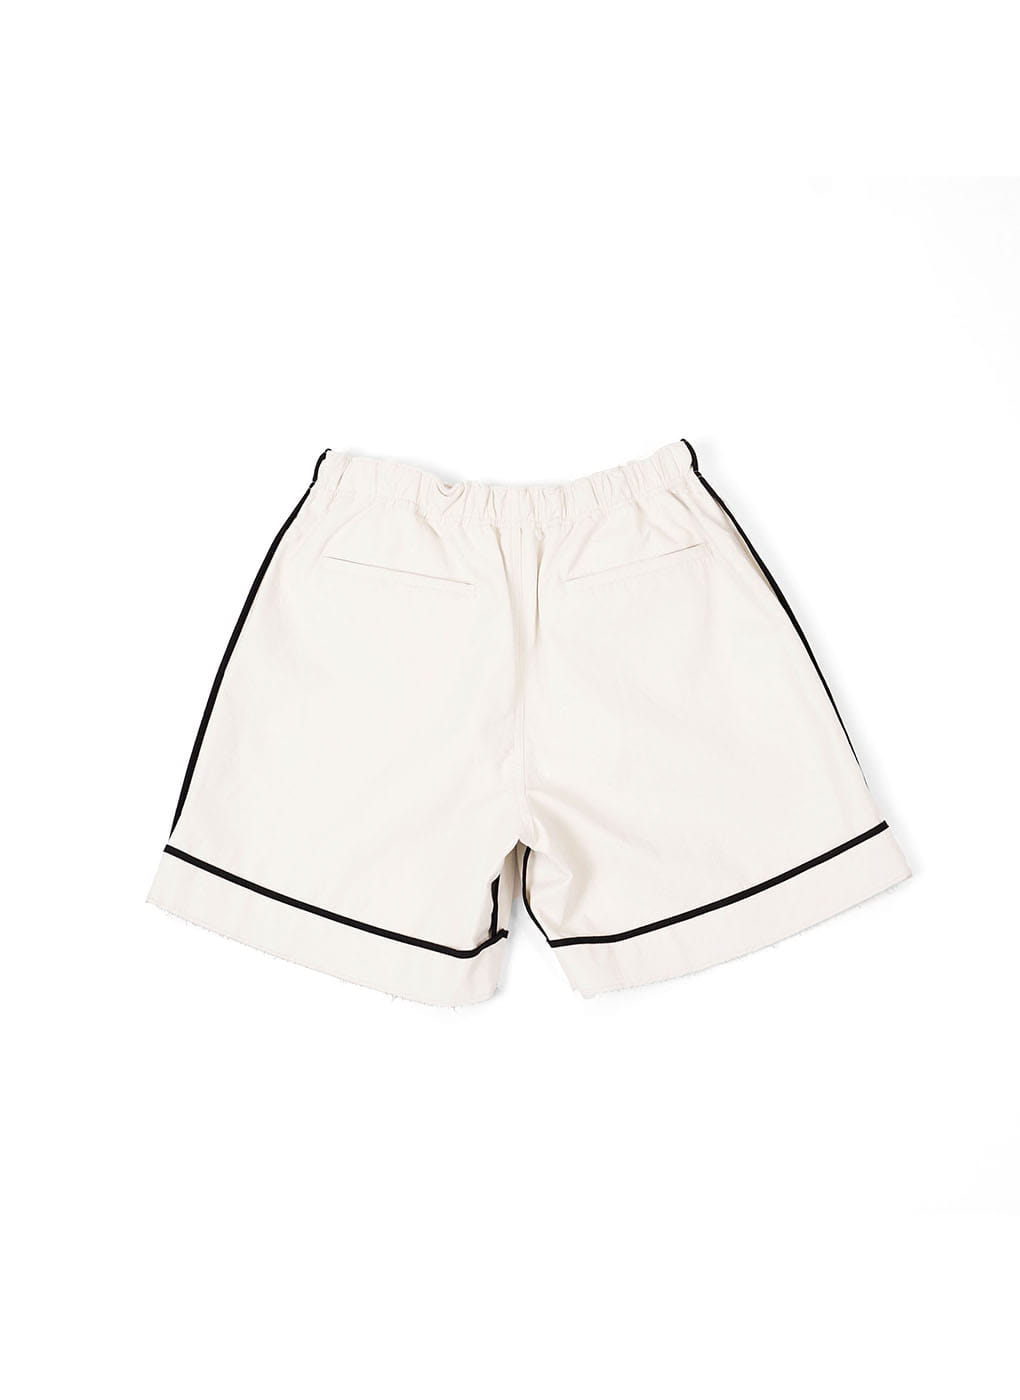 Faux Leather Black Seam Binding Shorts